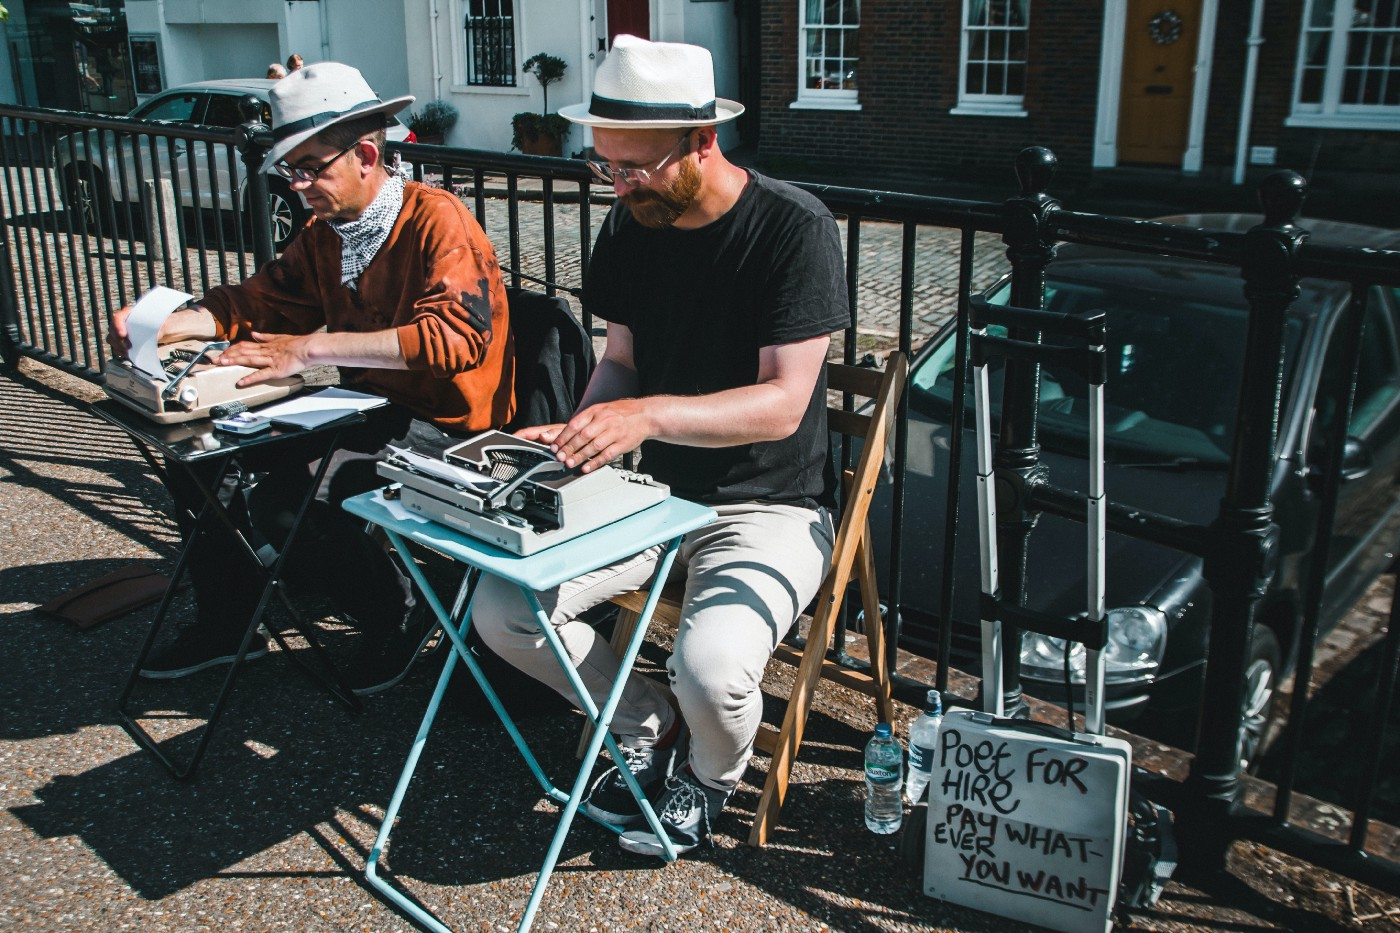 Two male poets, each with his own typewriter, sit side-by-side on a city street, writing poems for the public.